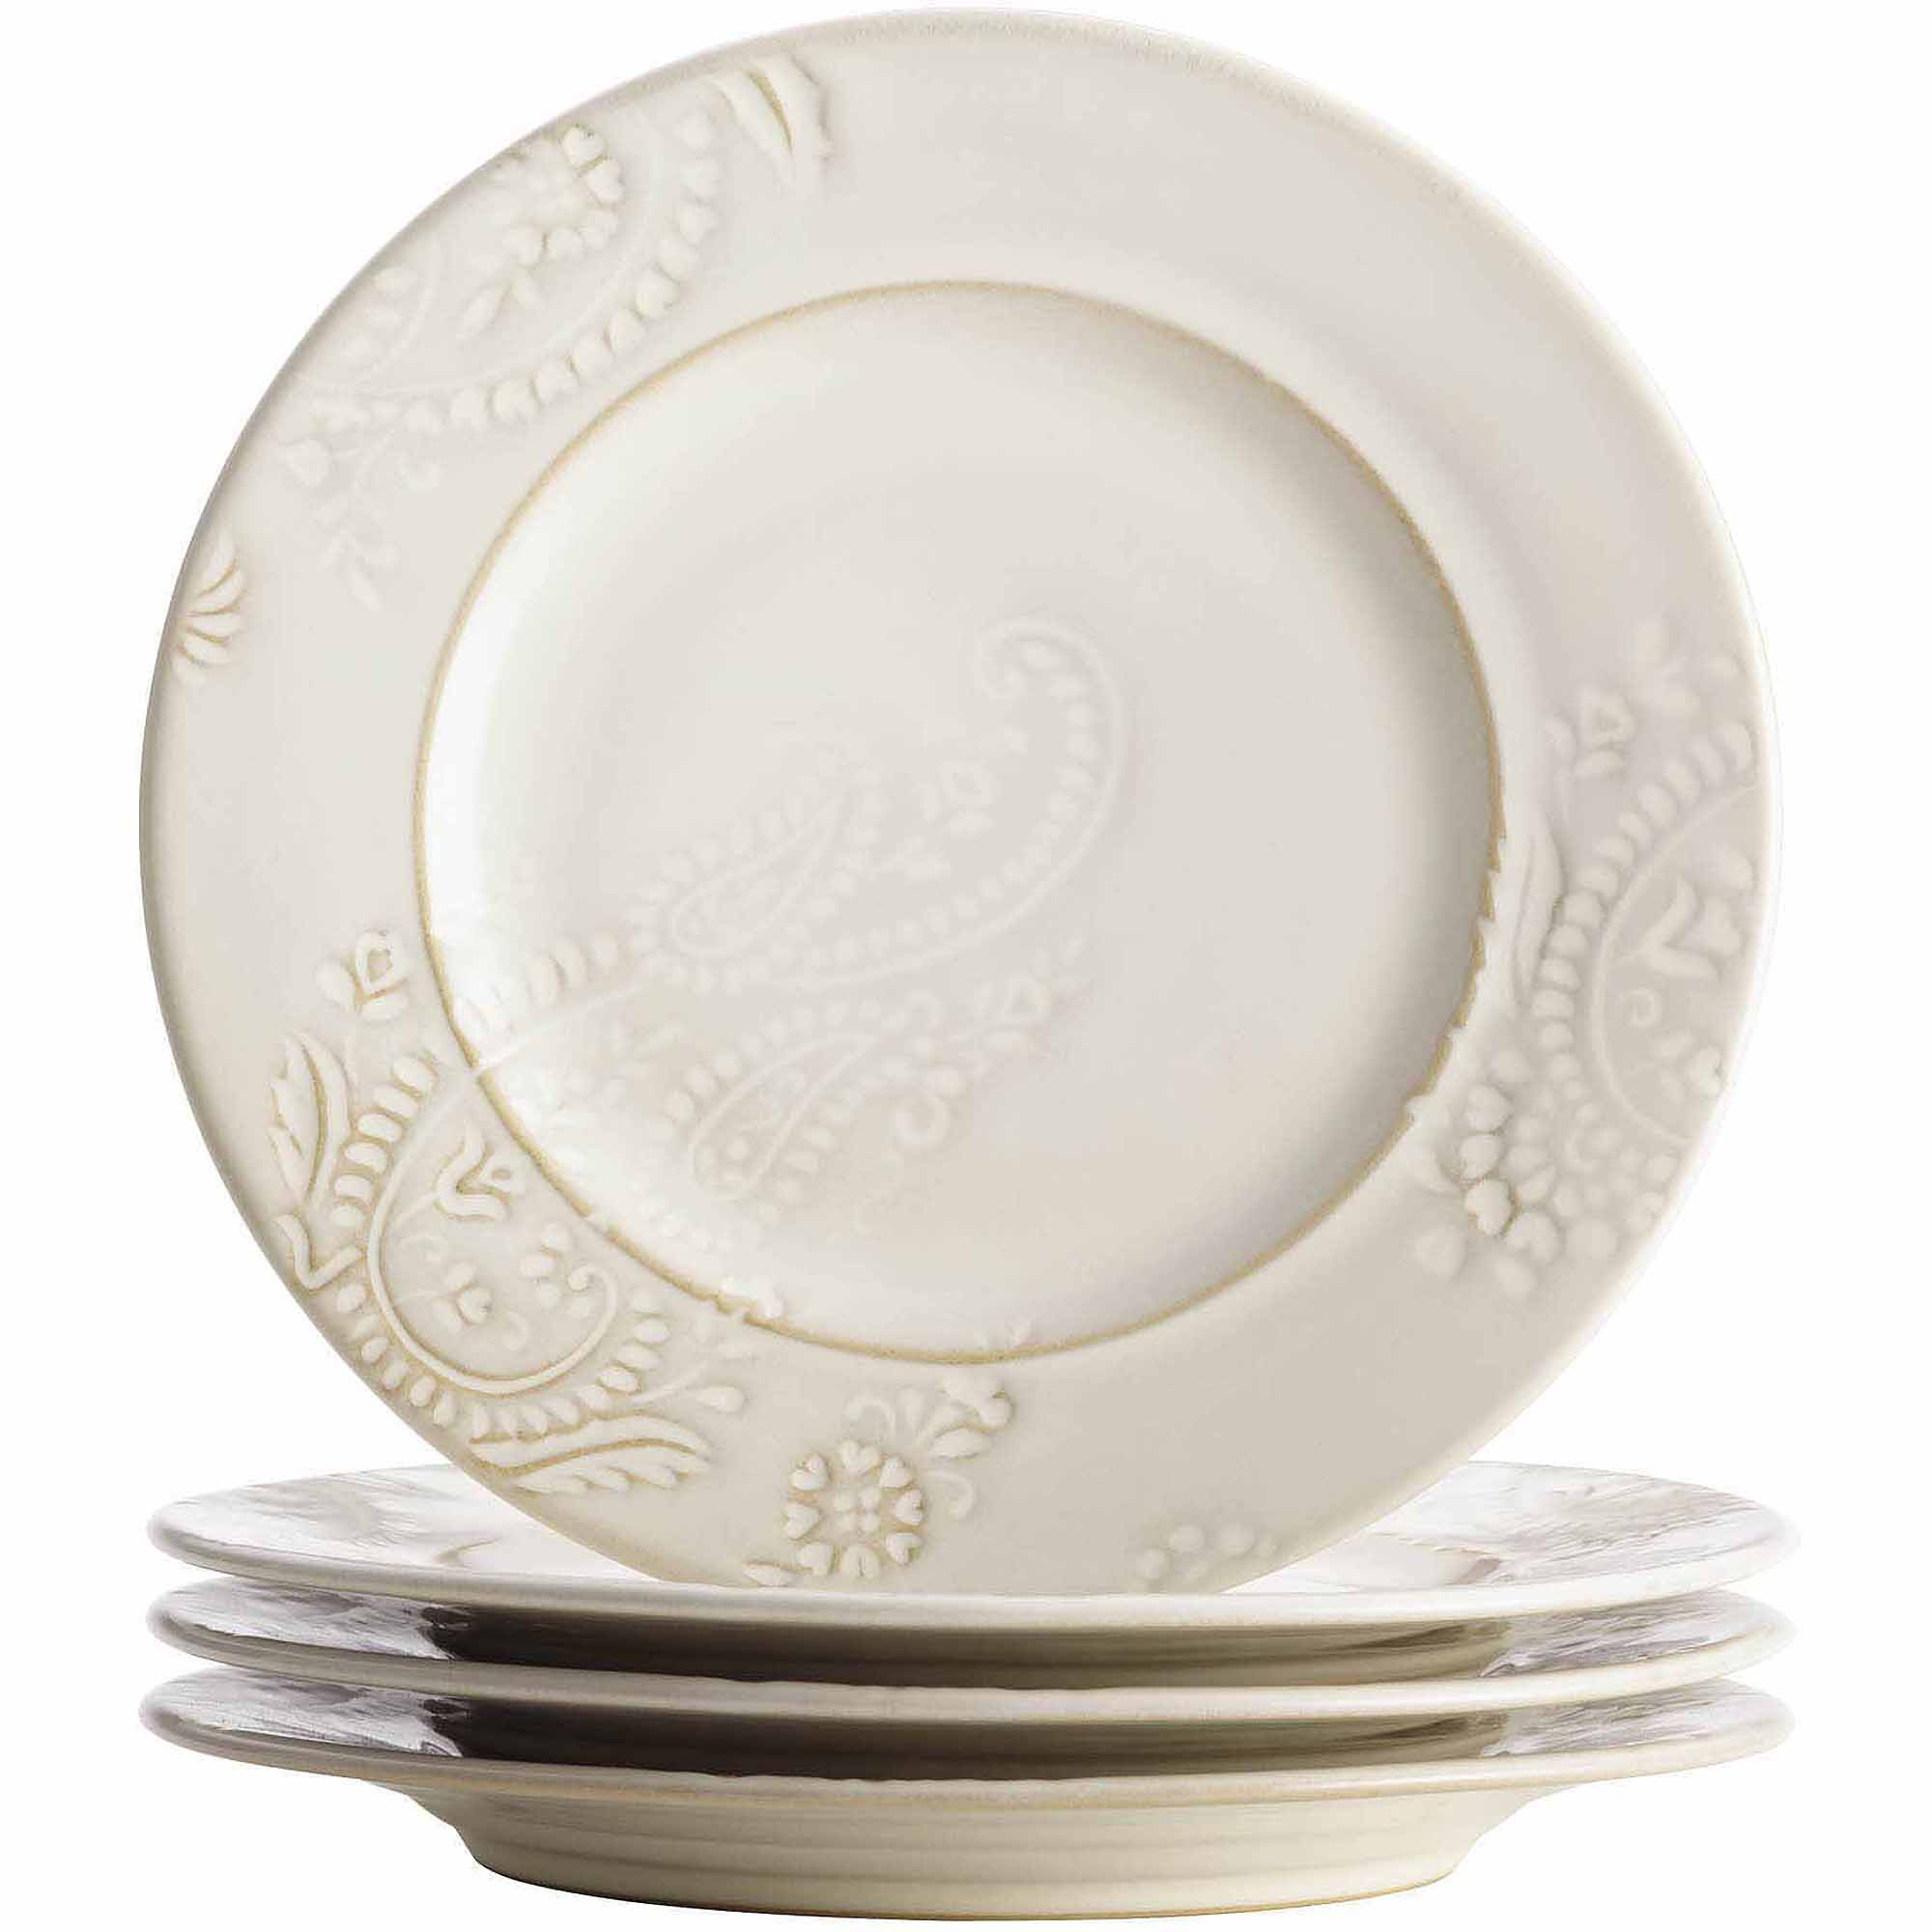 Stoneware Dinnerware Sets | White Stoneware Dinnerware Sets | Chris Madden Dinnerware